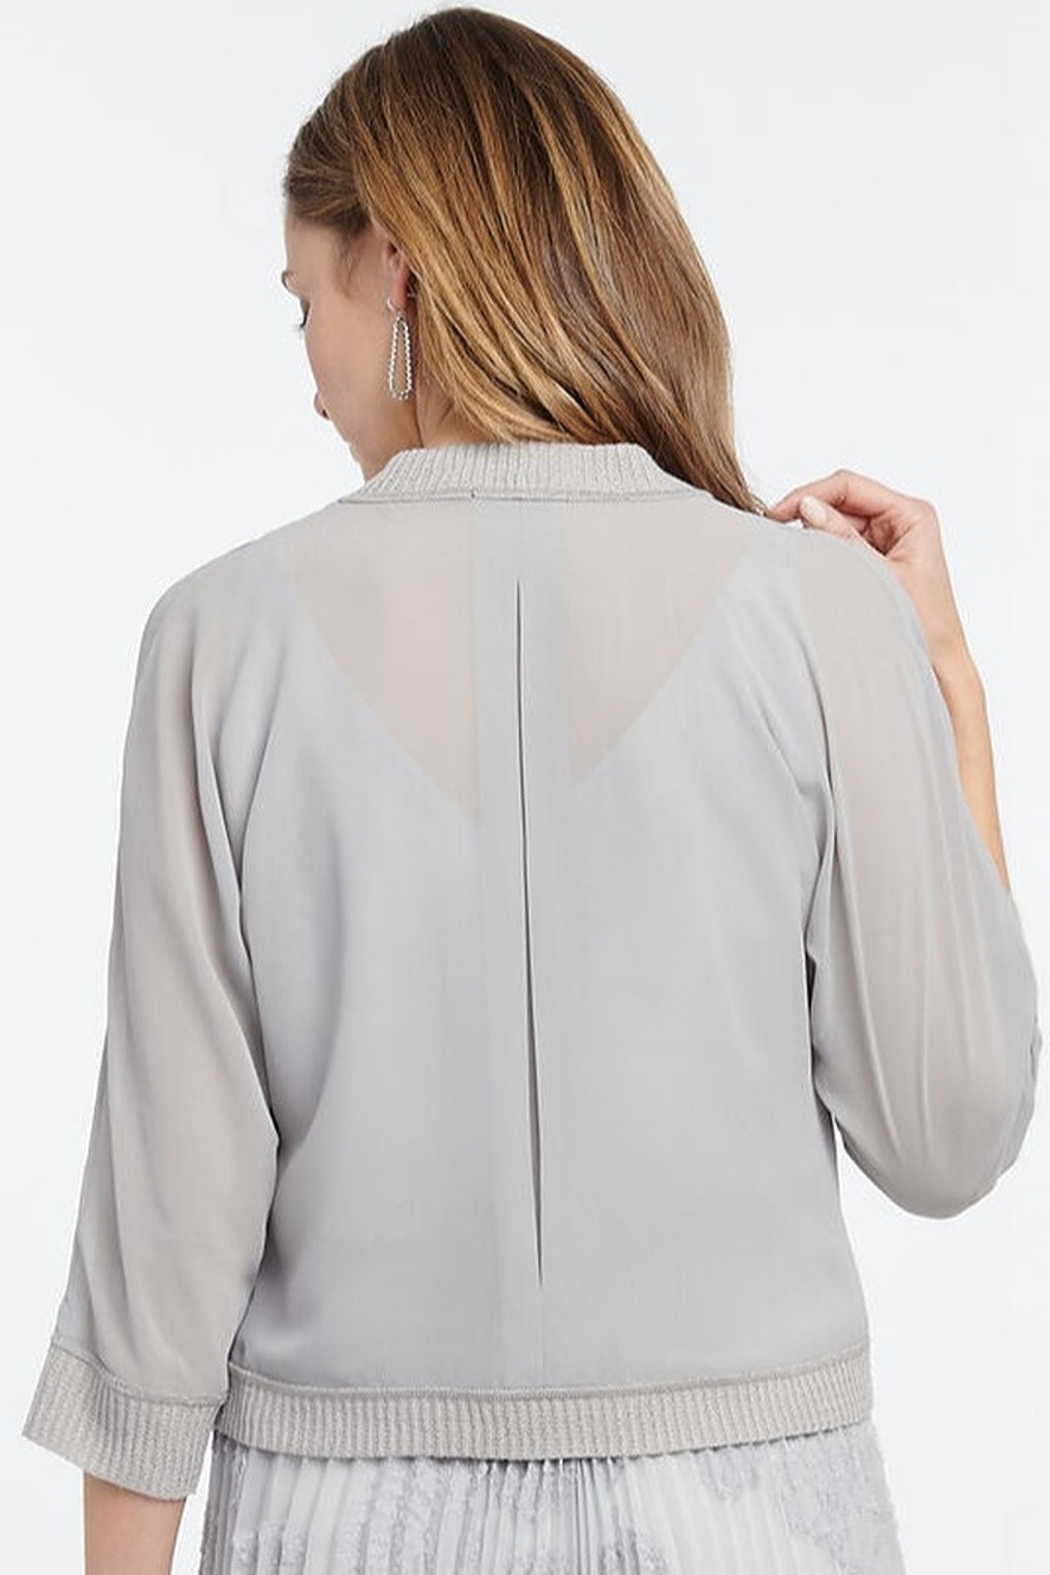 Nic + Zoe Sheer cardigan, pale smoke, open front, 3/4 sleeves - Front Full Image